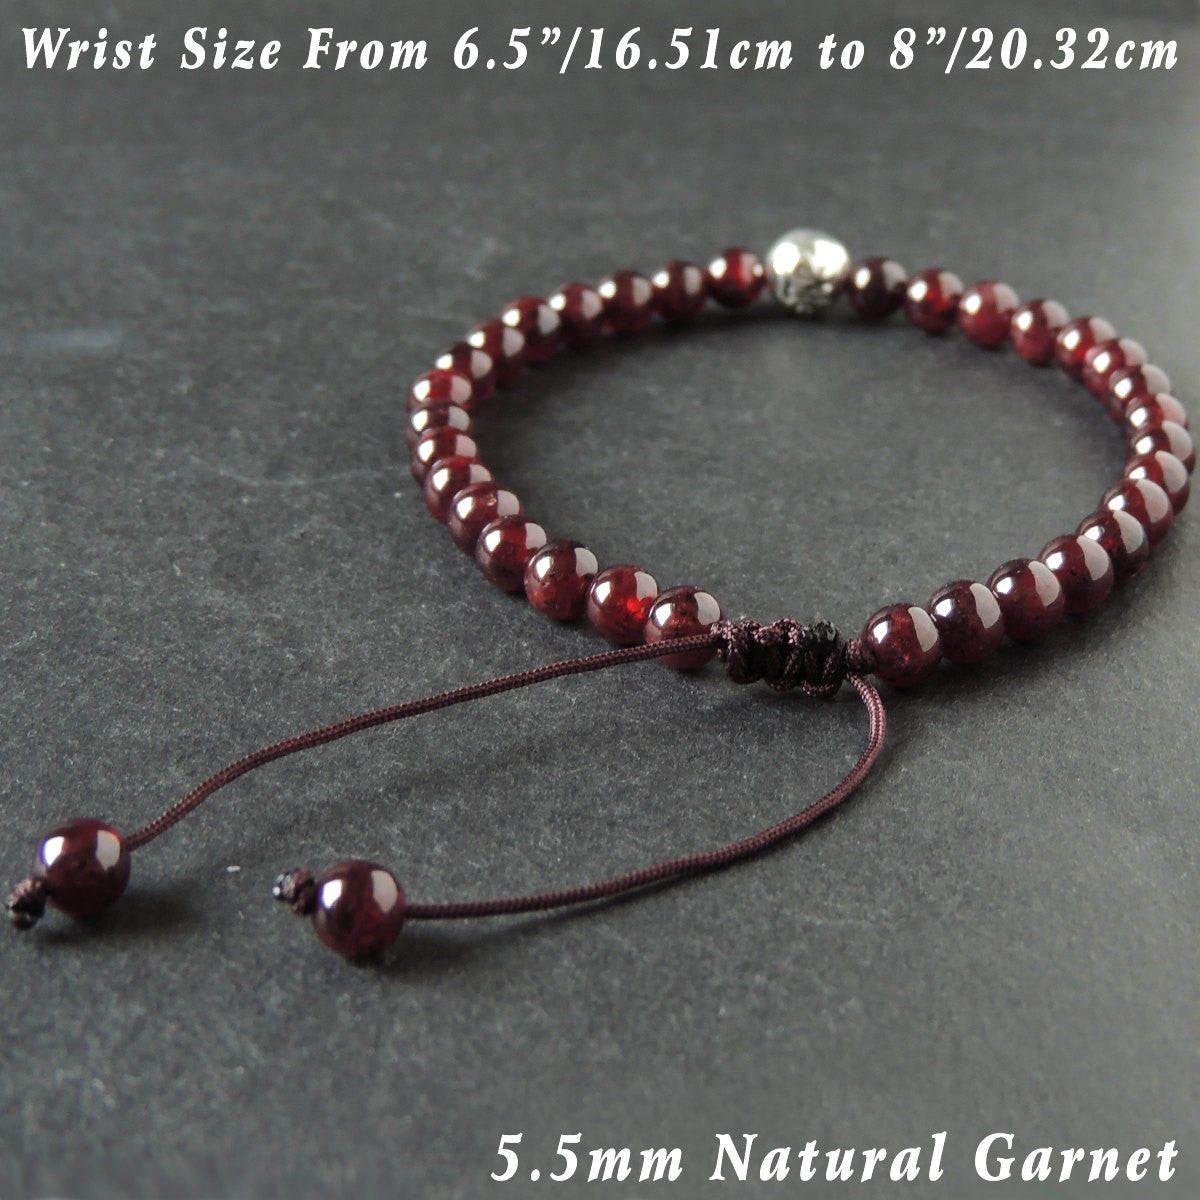 5.5mm Grade AAA Garnet Adjustable Braided Gemstone Bracelet with S925 Sterling Silver OM Emblem Bead - Handmade by Gem & Silver BR1019